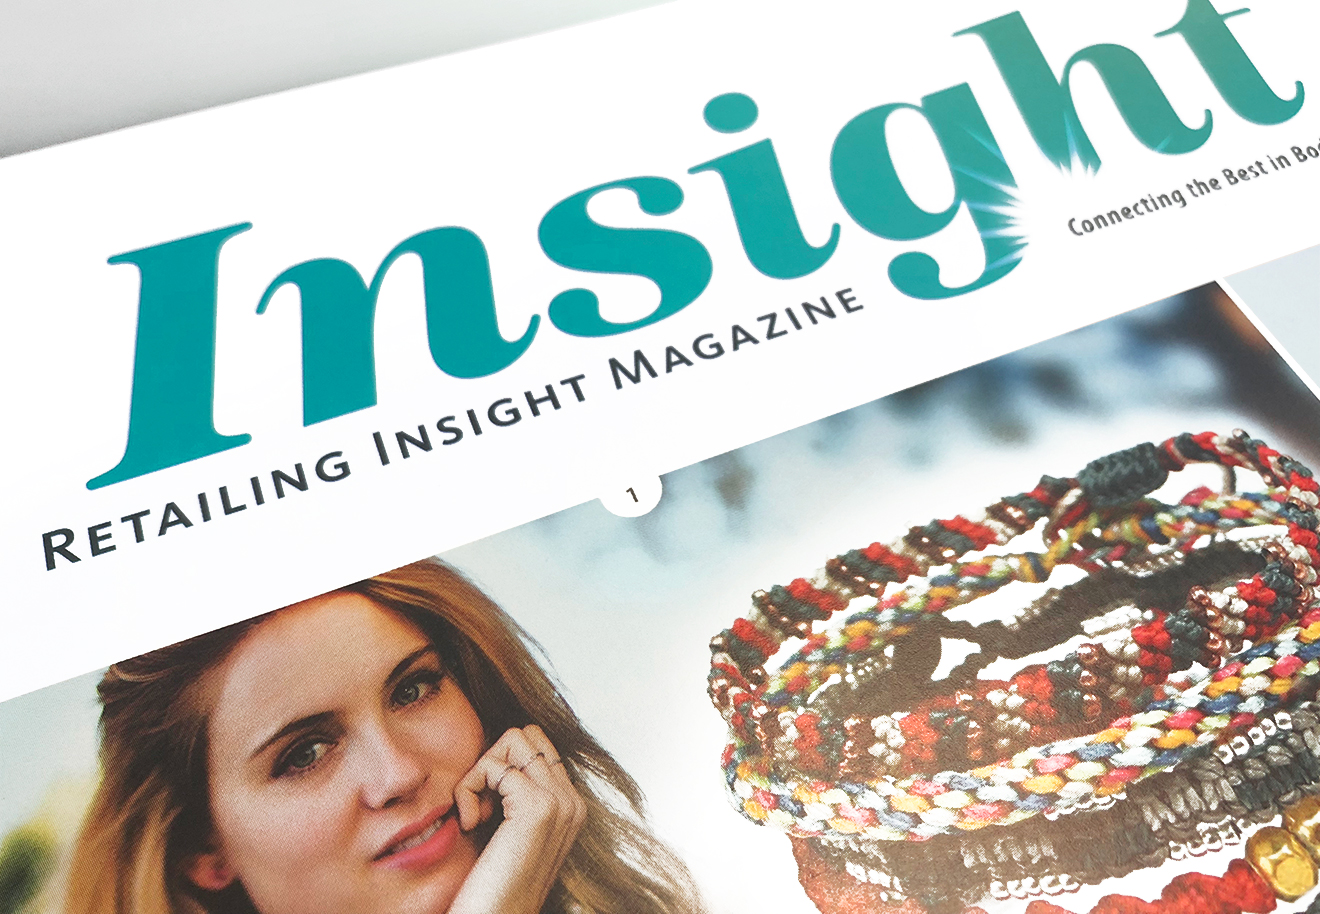 Retailing Insight Covers